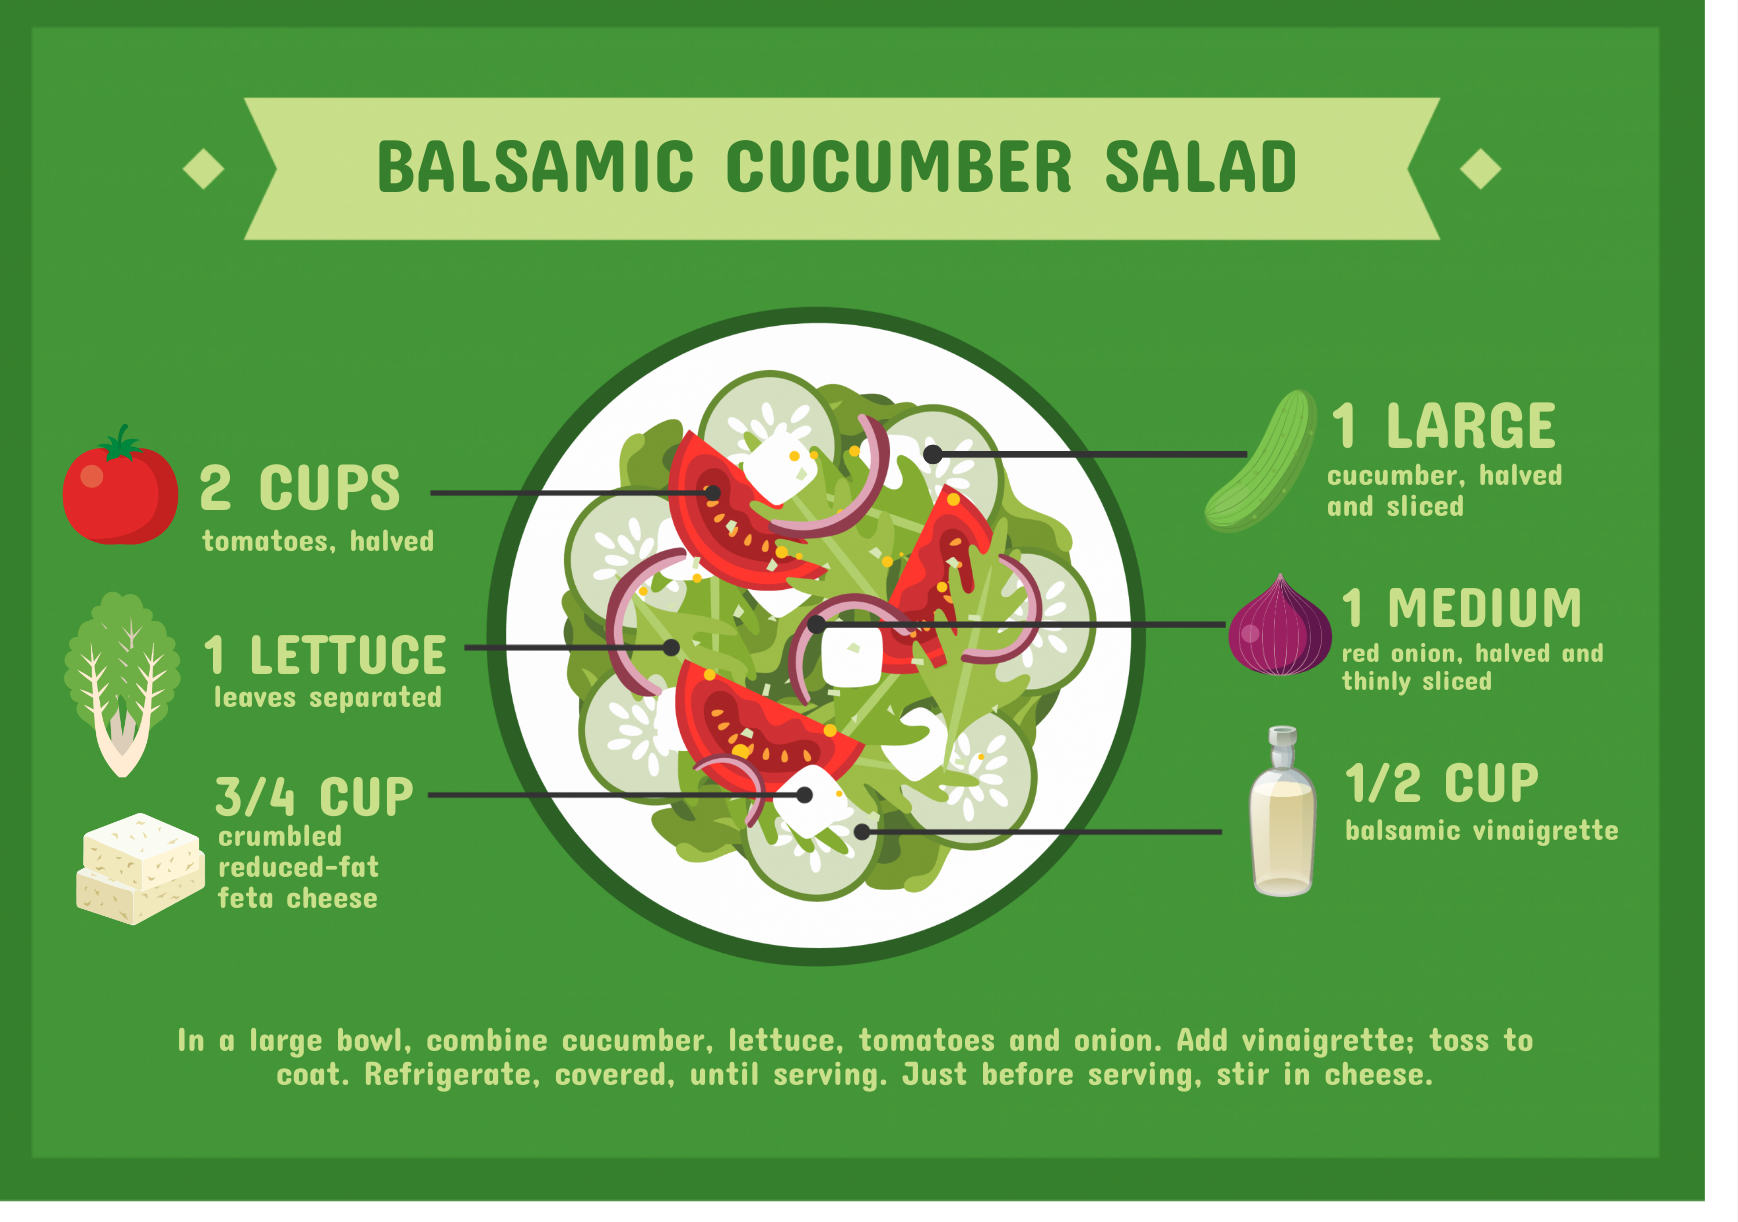 an infographic about balsamic cucumber salad recipe